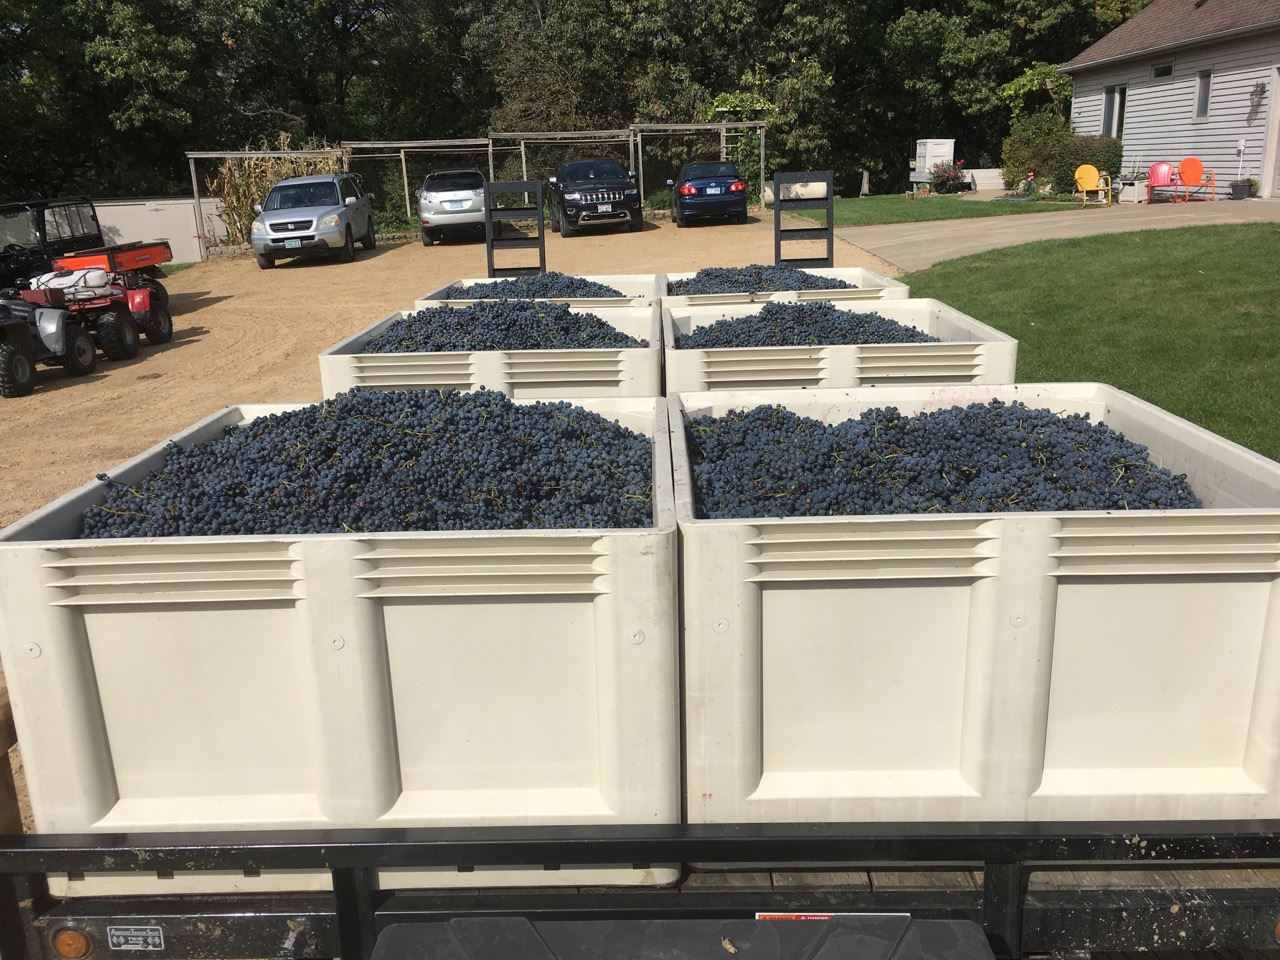 Crates ofGrapes